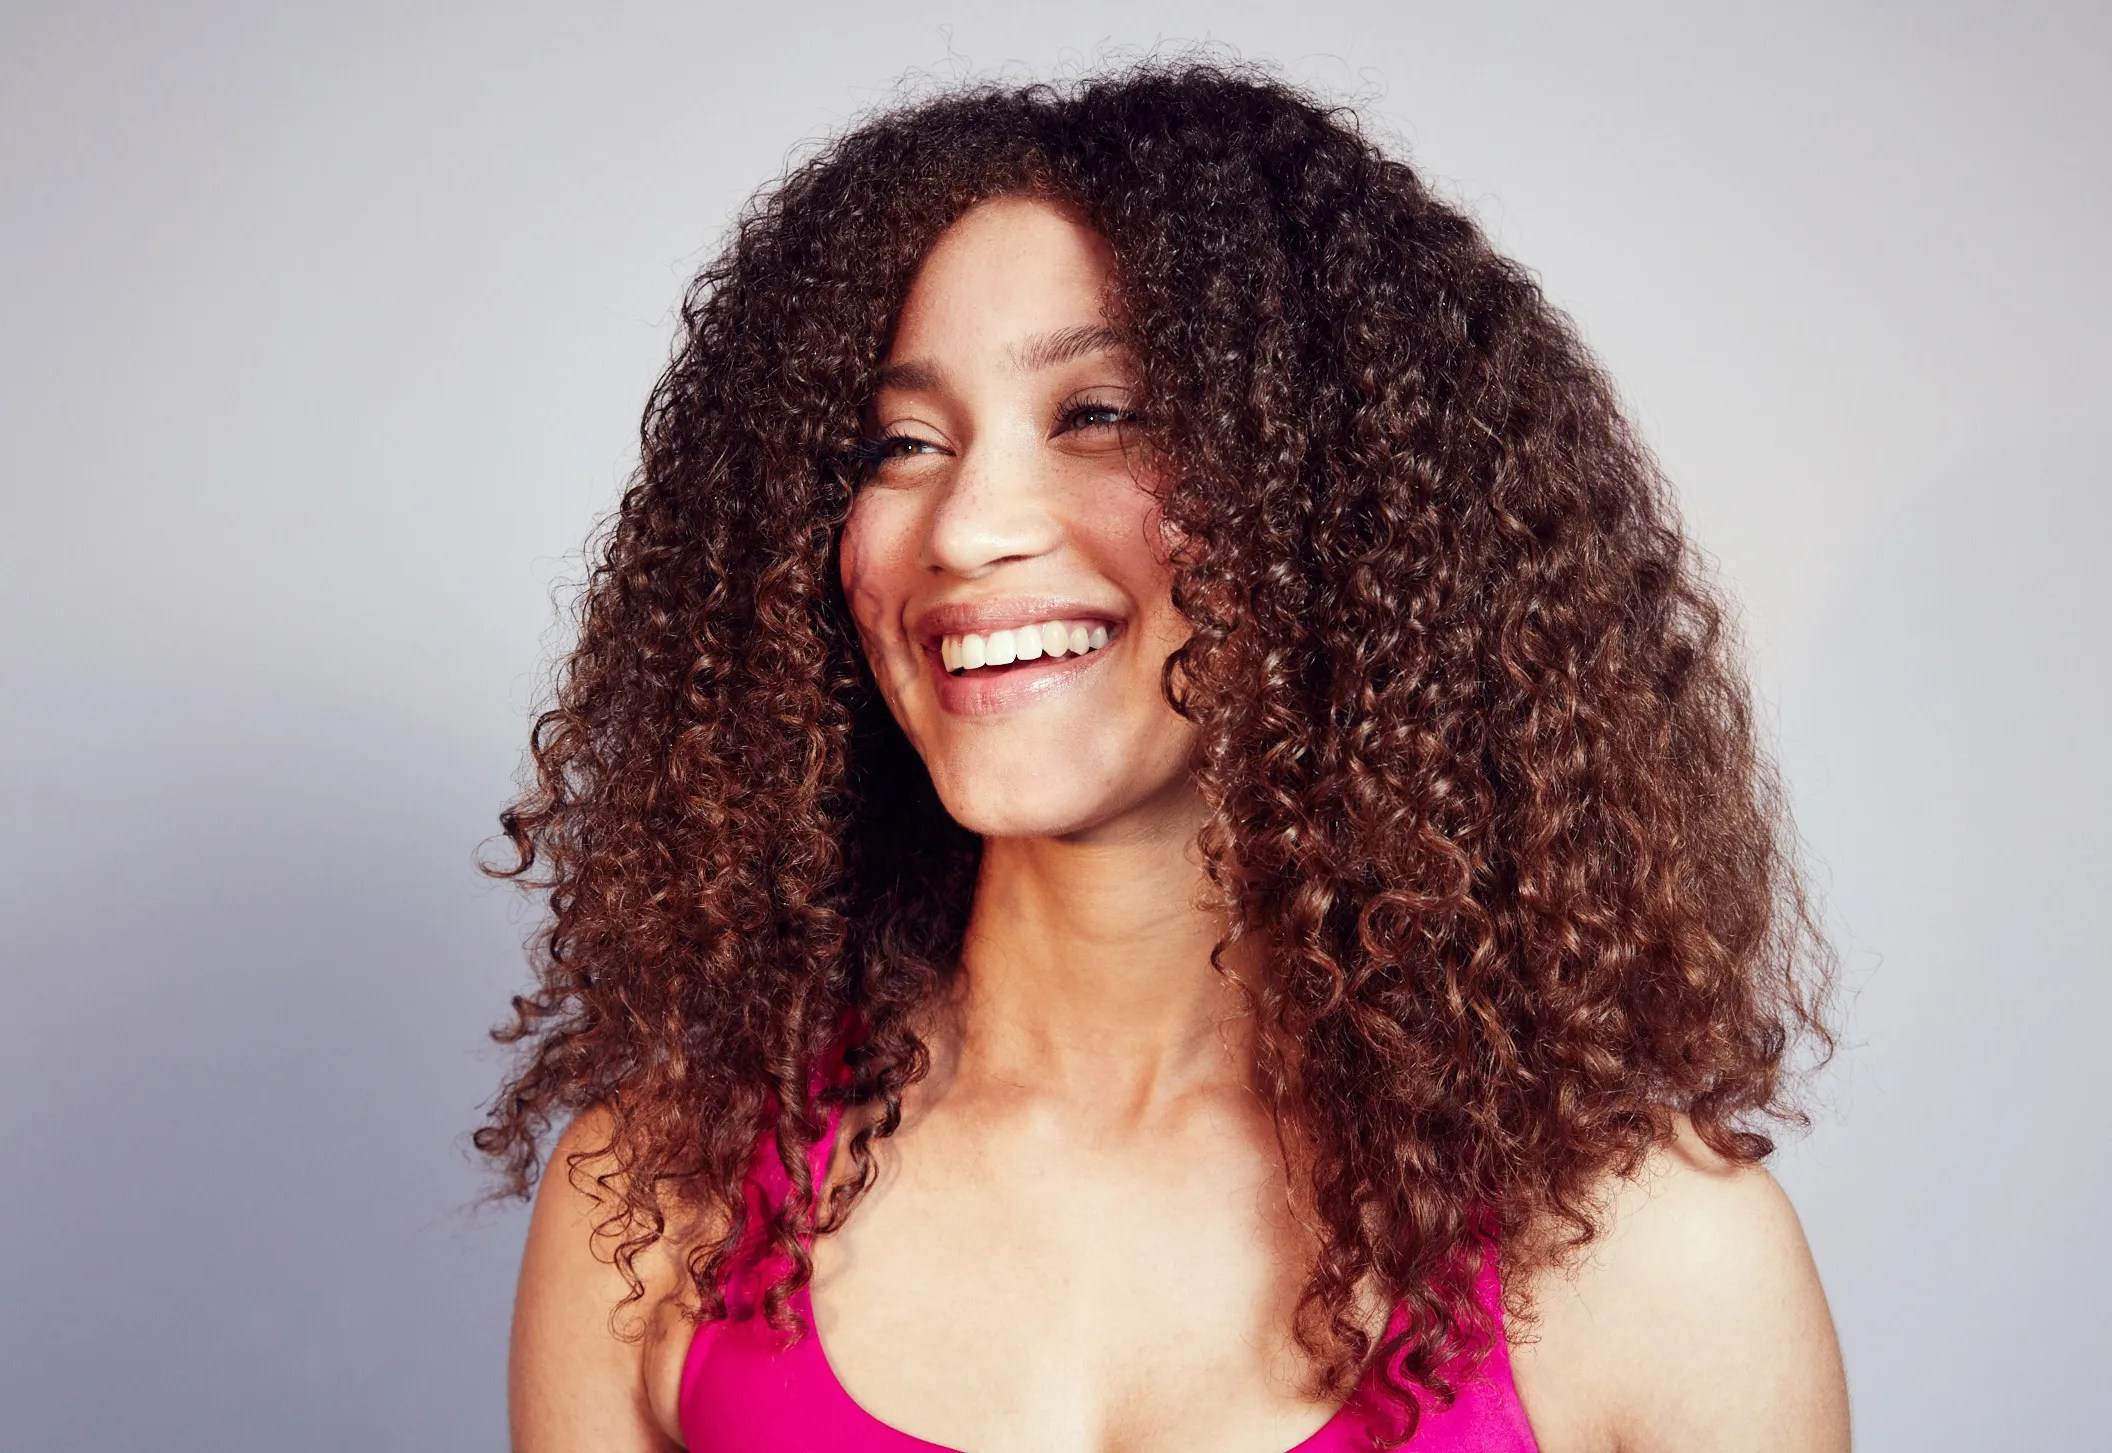 The Best Way To Air Dry Your Hair If You Have Waves Curls Or